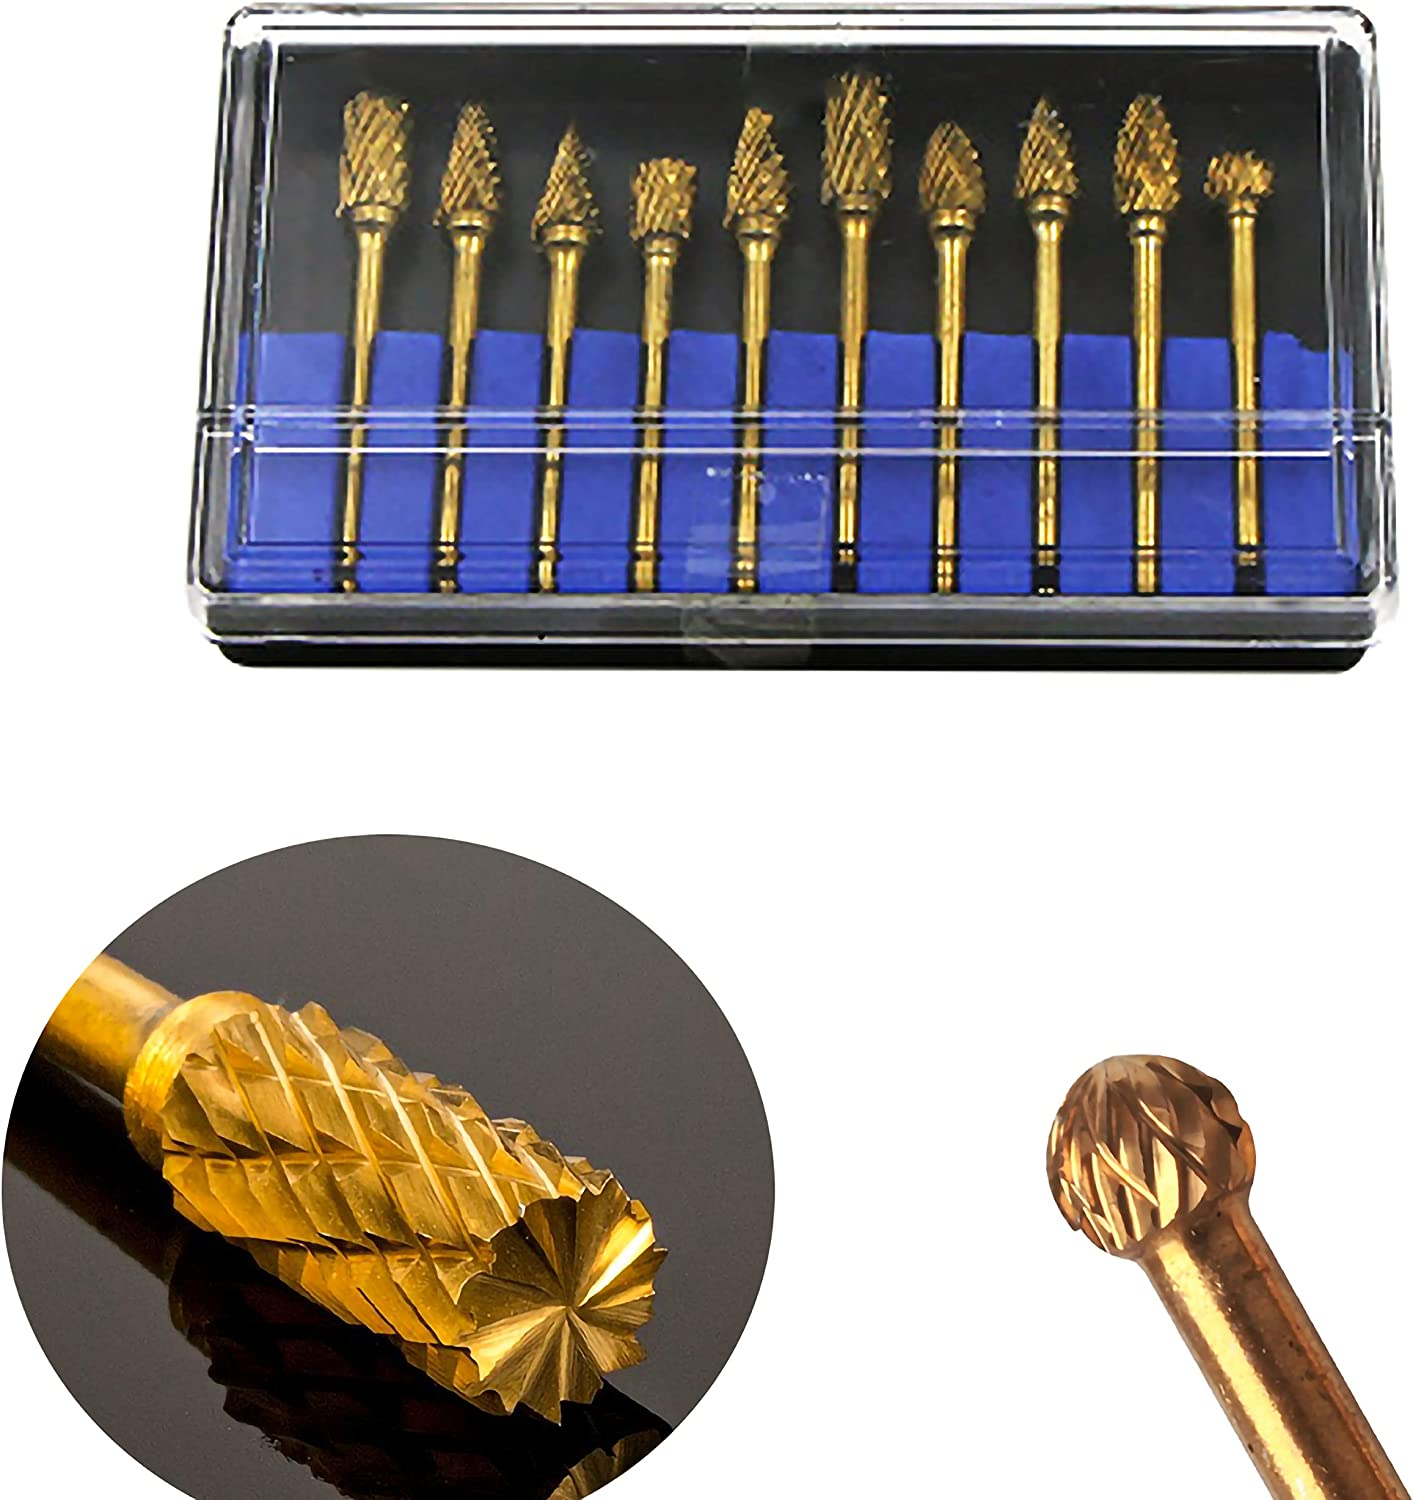 1//8 Inch Woodworking KEWAYO 10 Pieces Tungsten Carbide Rotary Burr Set Shank and 6 mm 1//4 Inch Engraving Drilling 3mm Polishing Head Length for Metal Carving